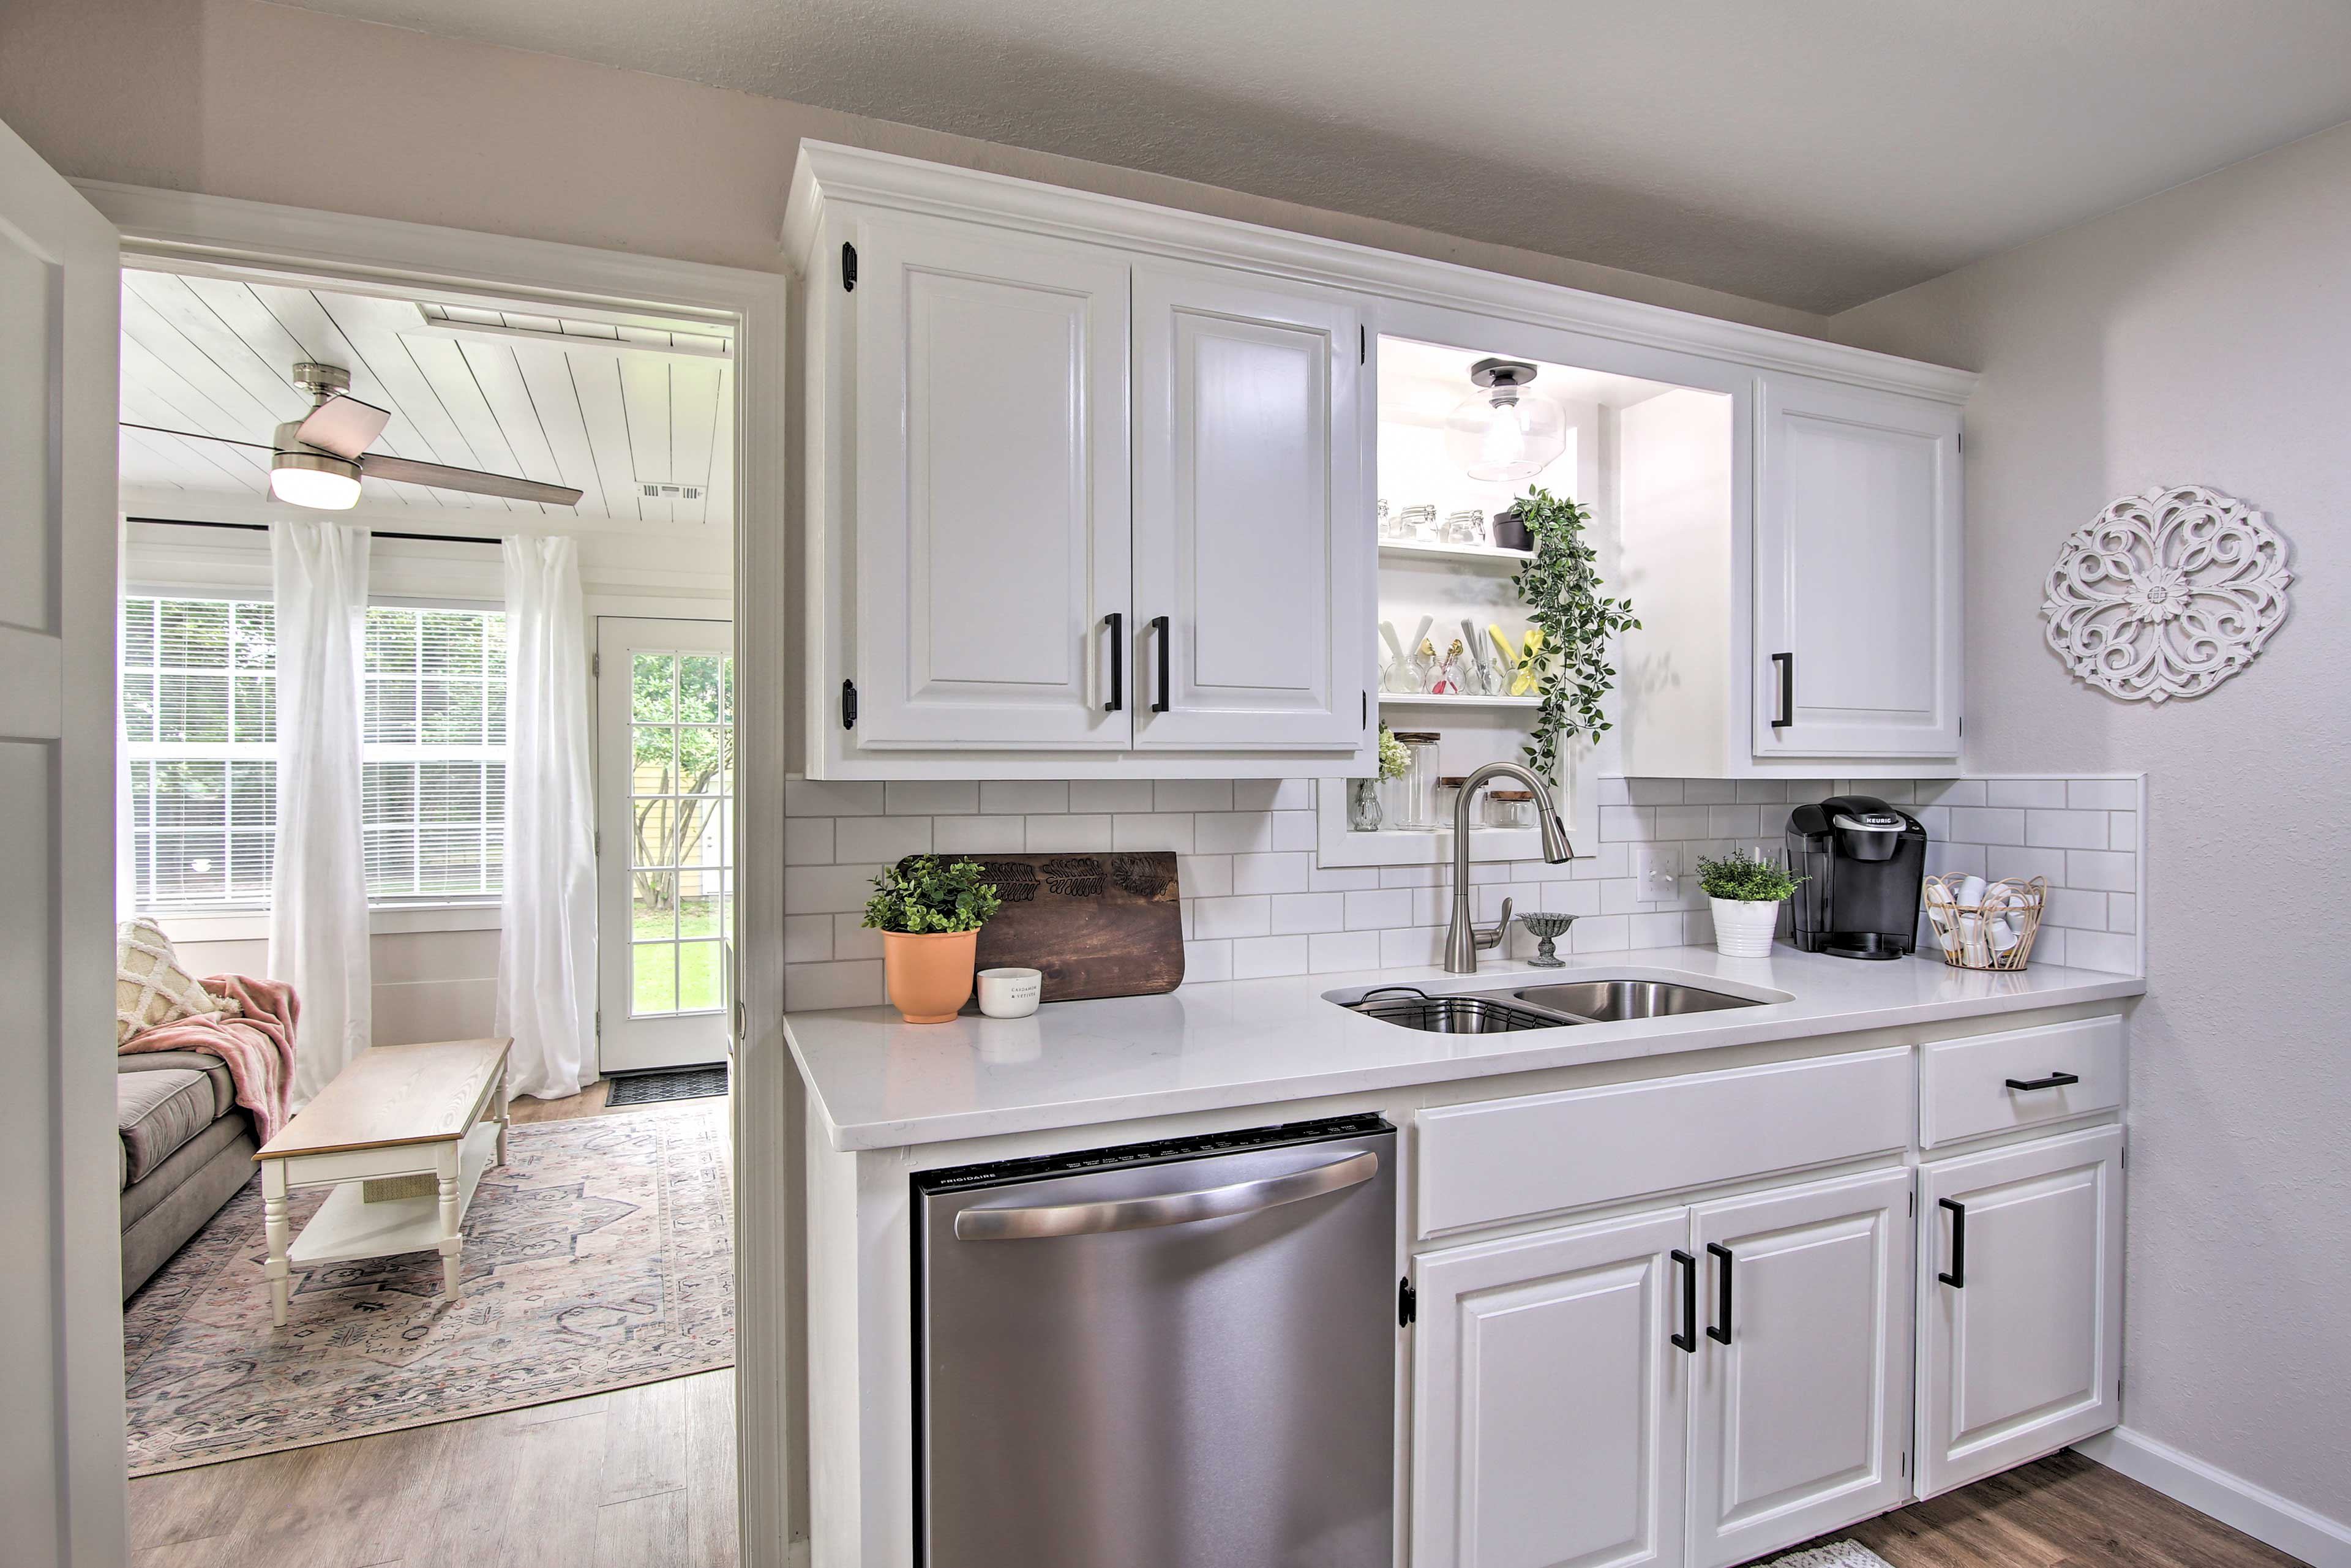 Kitchen   Newly Remodeled   Updated Appliances